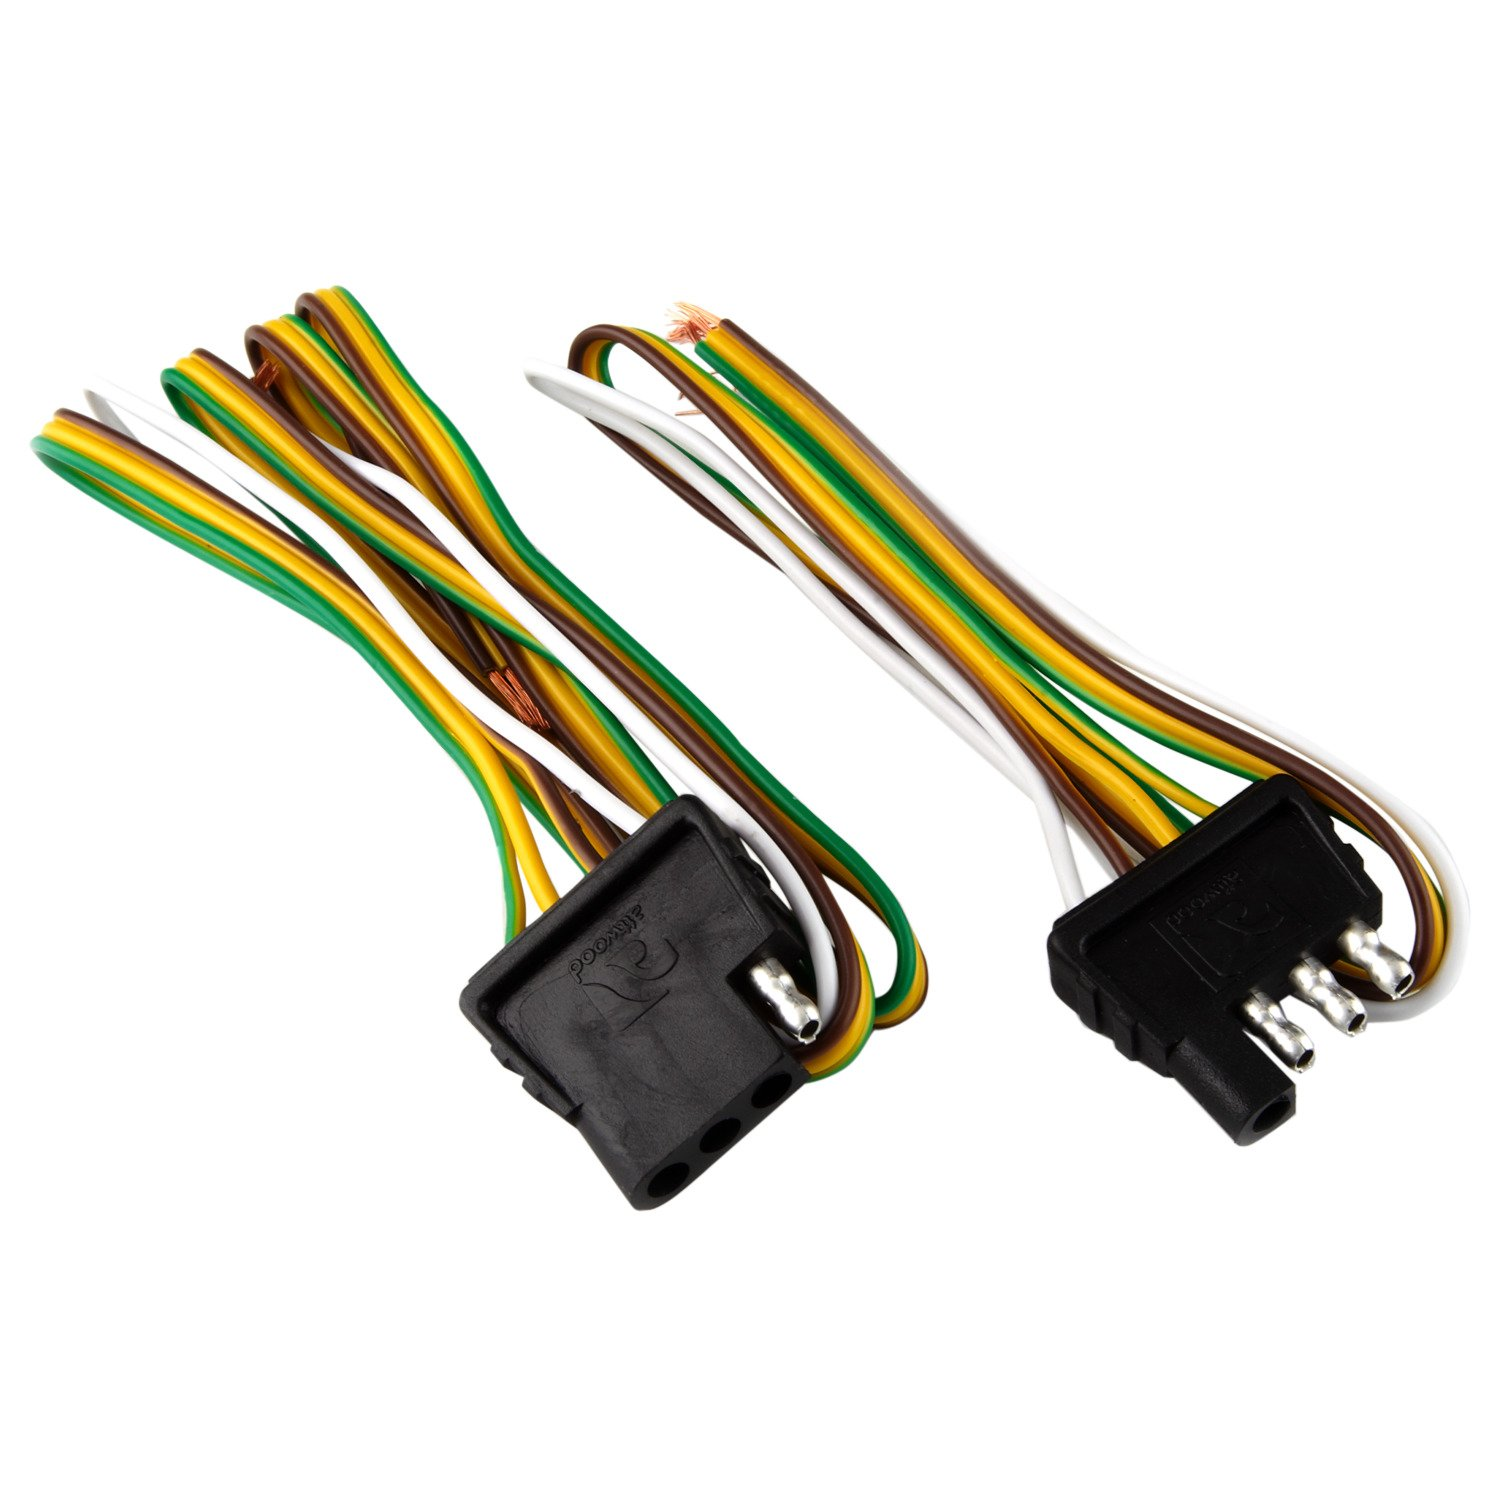 attwood 4 way flat wiring harness kit for vehicles and trailers u haul trailer wiring flat 4 wiring harness [ 1500 x 1500 Pixel ]